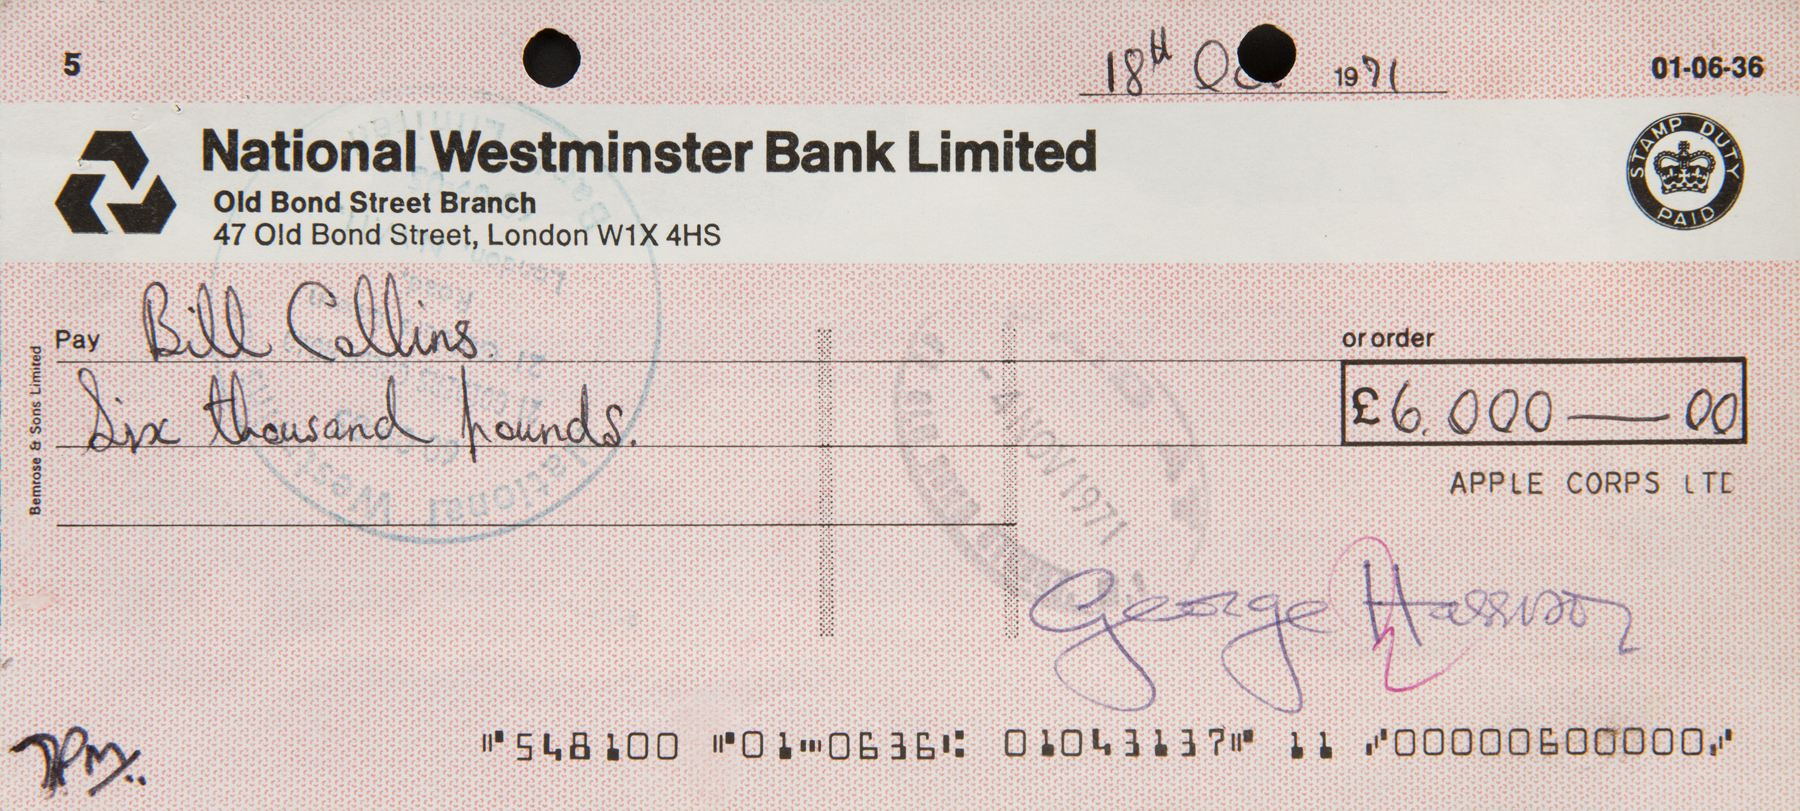 Lot 313 - GEORGE HARRISON SIGNED CHECK A George Harrison signed Apple Corps check written to Bill Collins,